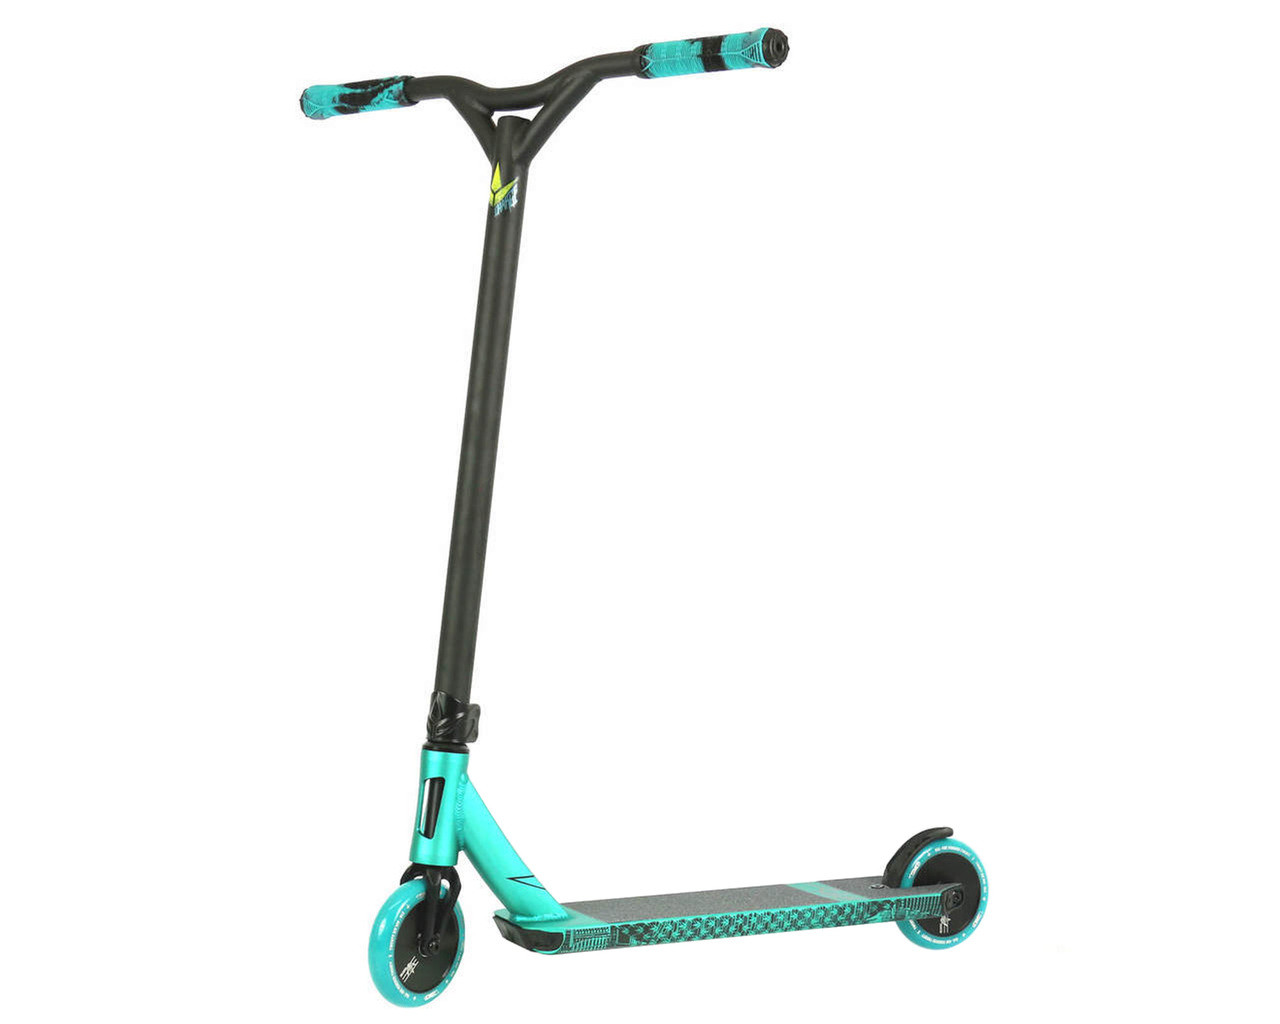 Envy KOS Charge Series 5 Complete Scooter